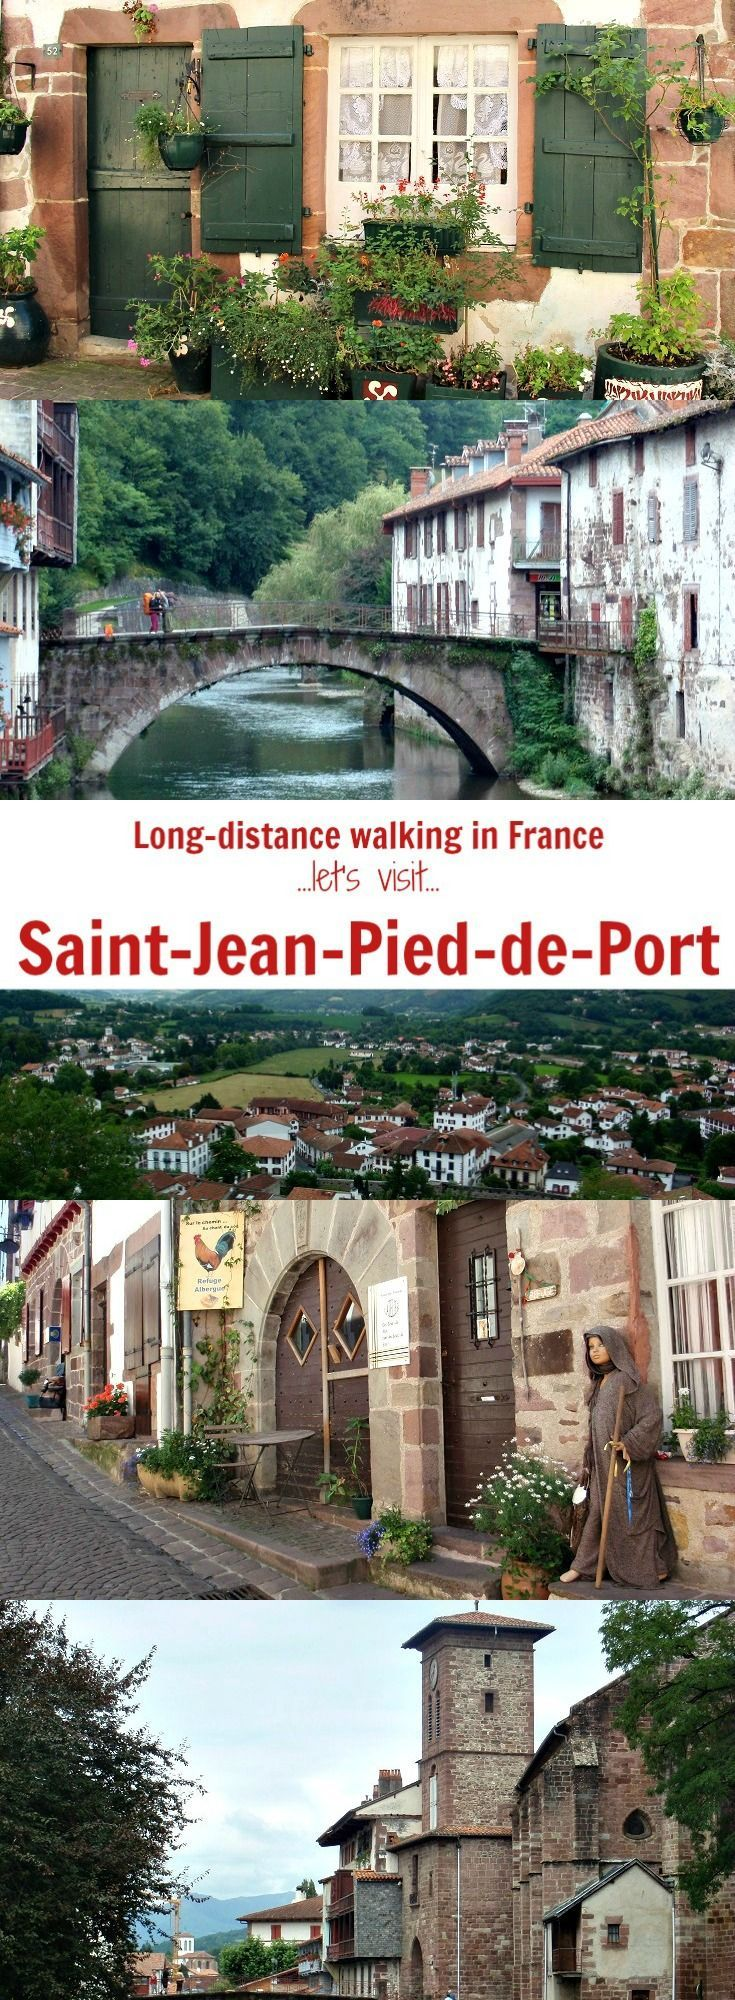 Recently joining the ranks of France's most beautiful villages, Saint-Jean-Pied-de-Port is a delightful note on which to end a long-distance walk. I've enjoyed many unforgettable moments here—these are a few of my favourites.